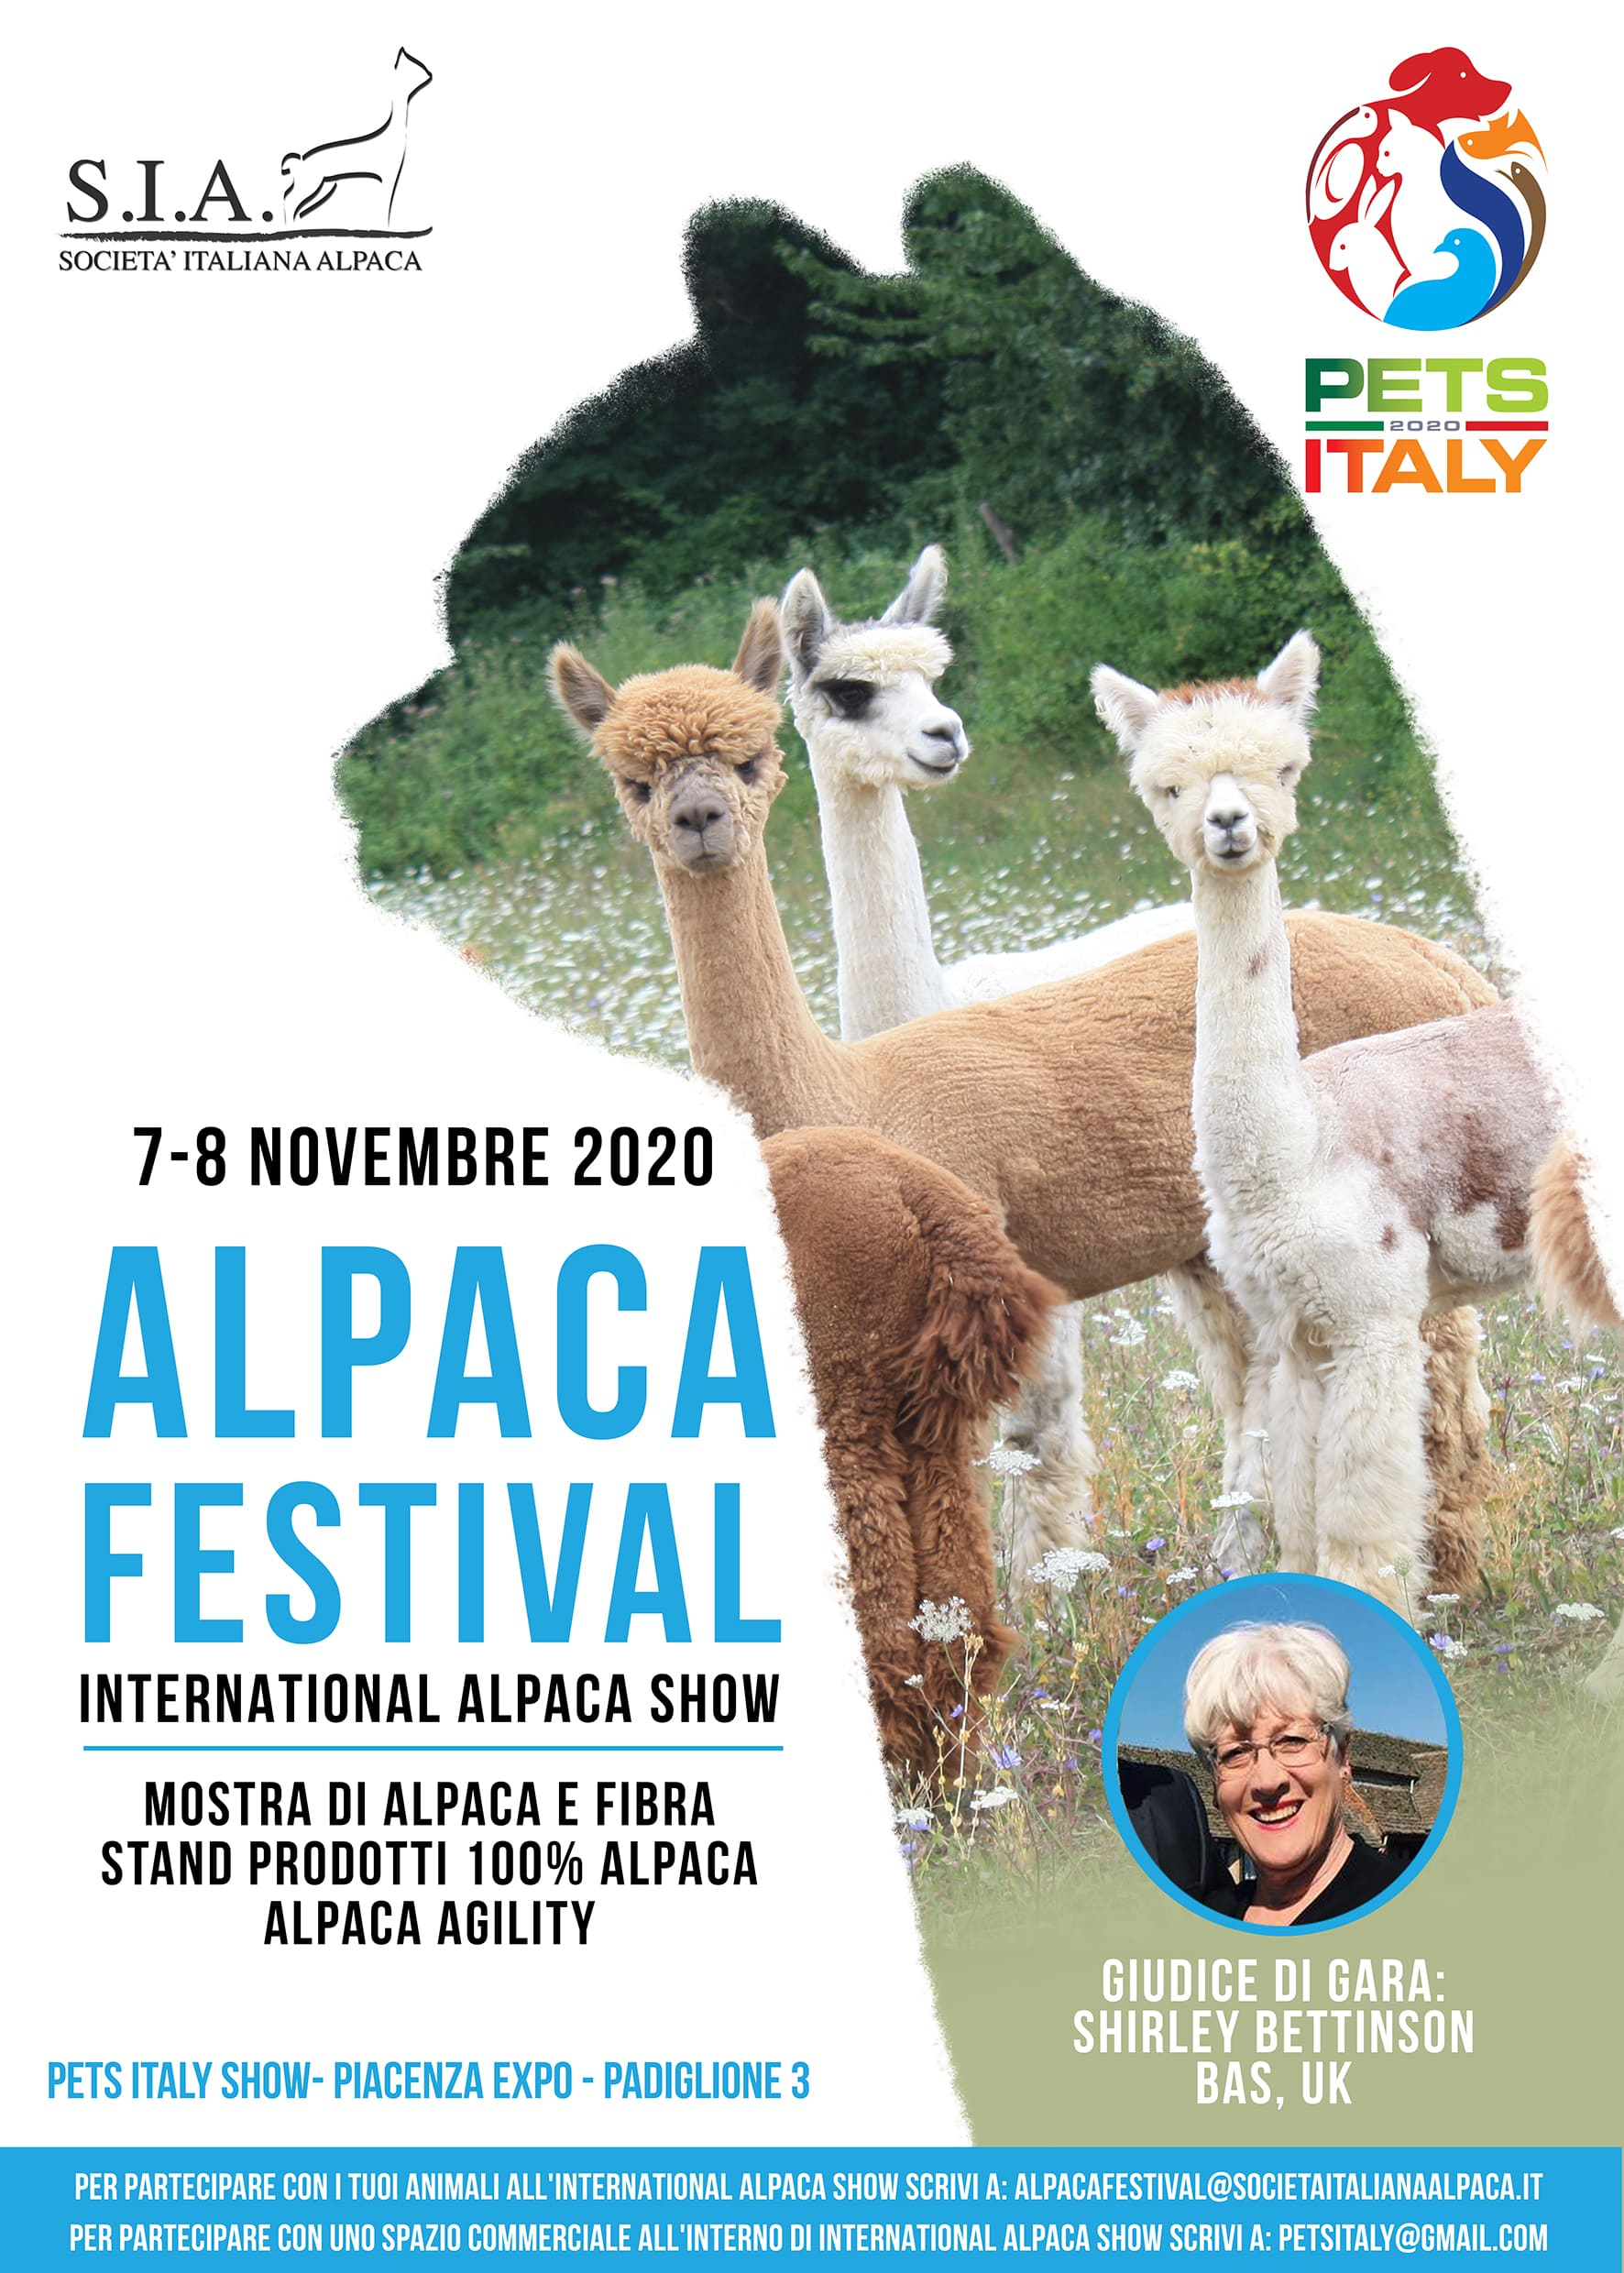 International Alpaca Show - Società Italiana Alpaca